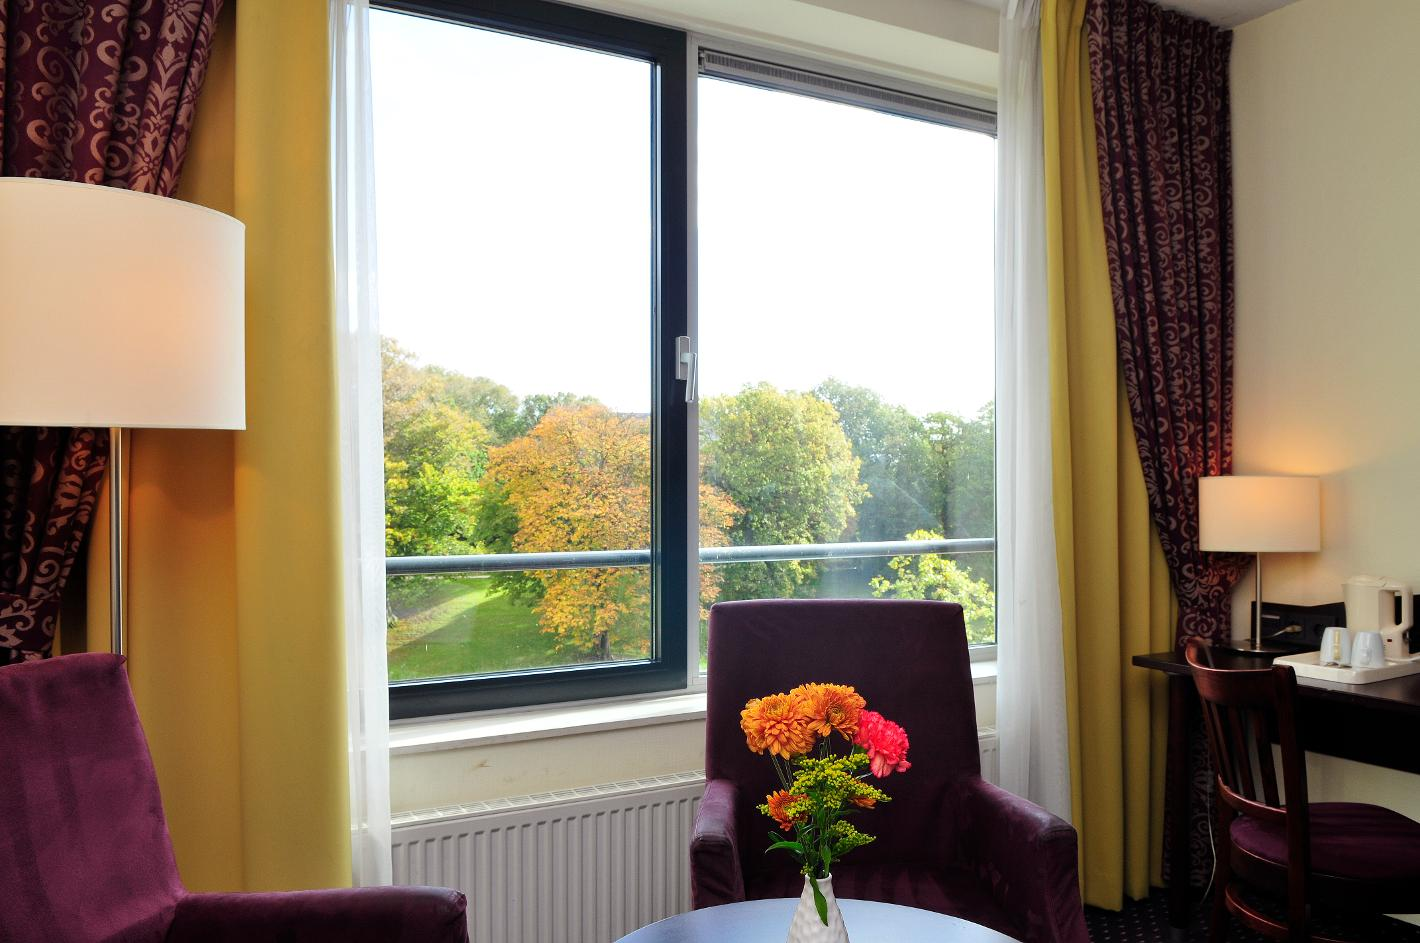 Photo Amrâth Hotel Alkmaar in Alkmaar, Sleep, Hotels & accommodations - #1